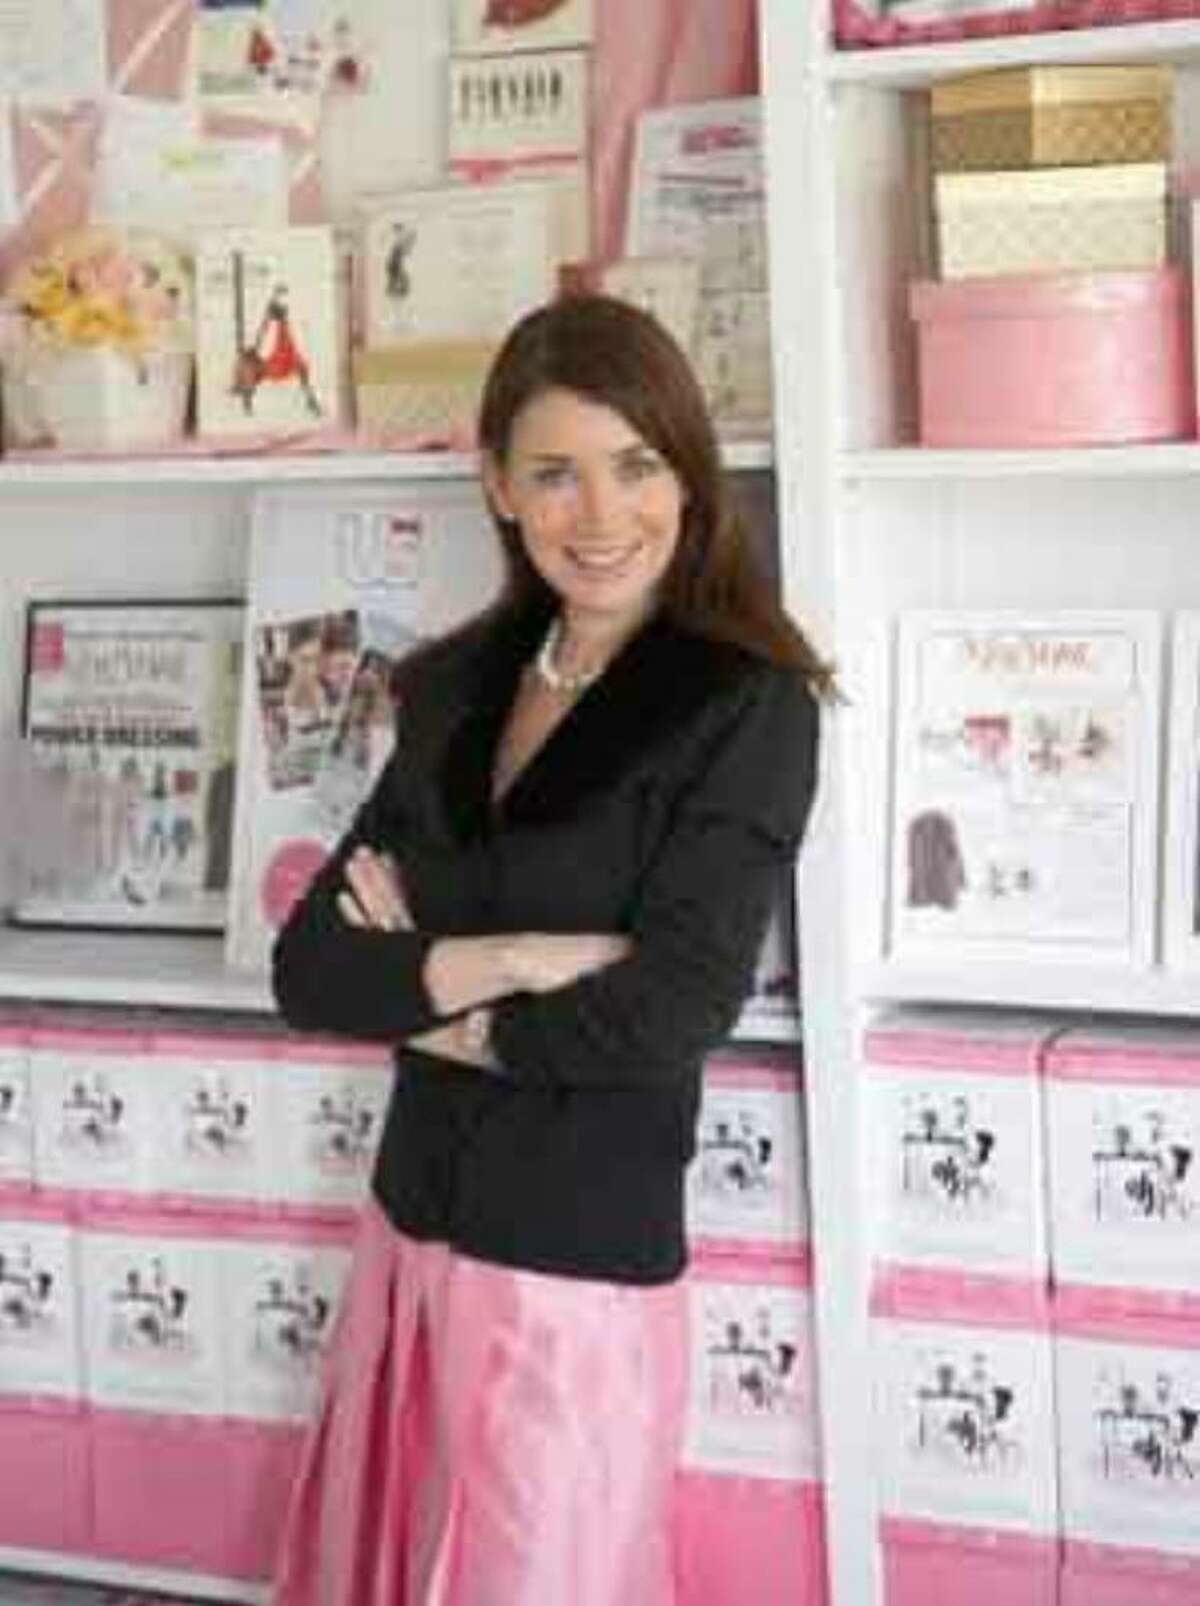 Westport resident Bonnie Marcus, founder of the Bonnie Marcus Collection, will receive EWN's 2010 Entrepreneur of the Year Award at the organization's June 7 event in Norwalk.